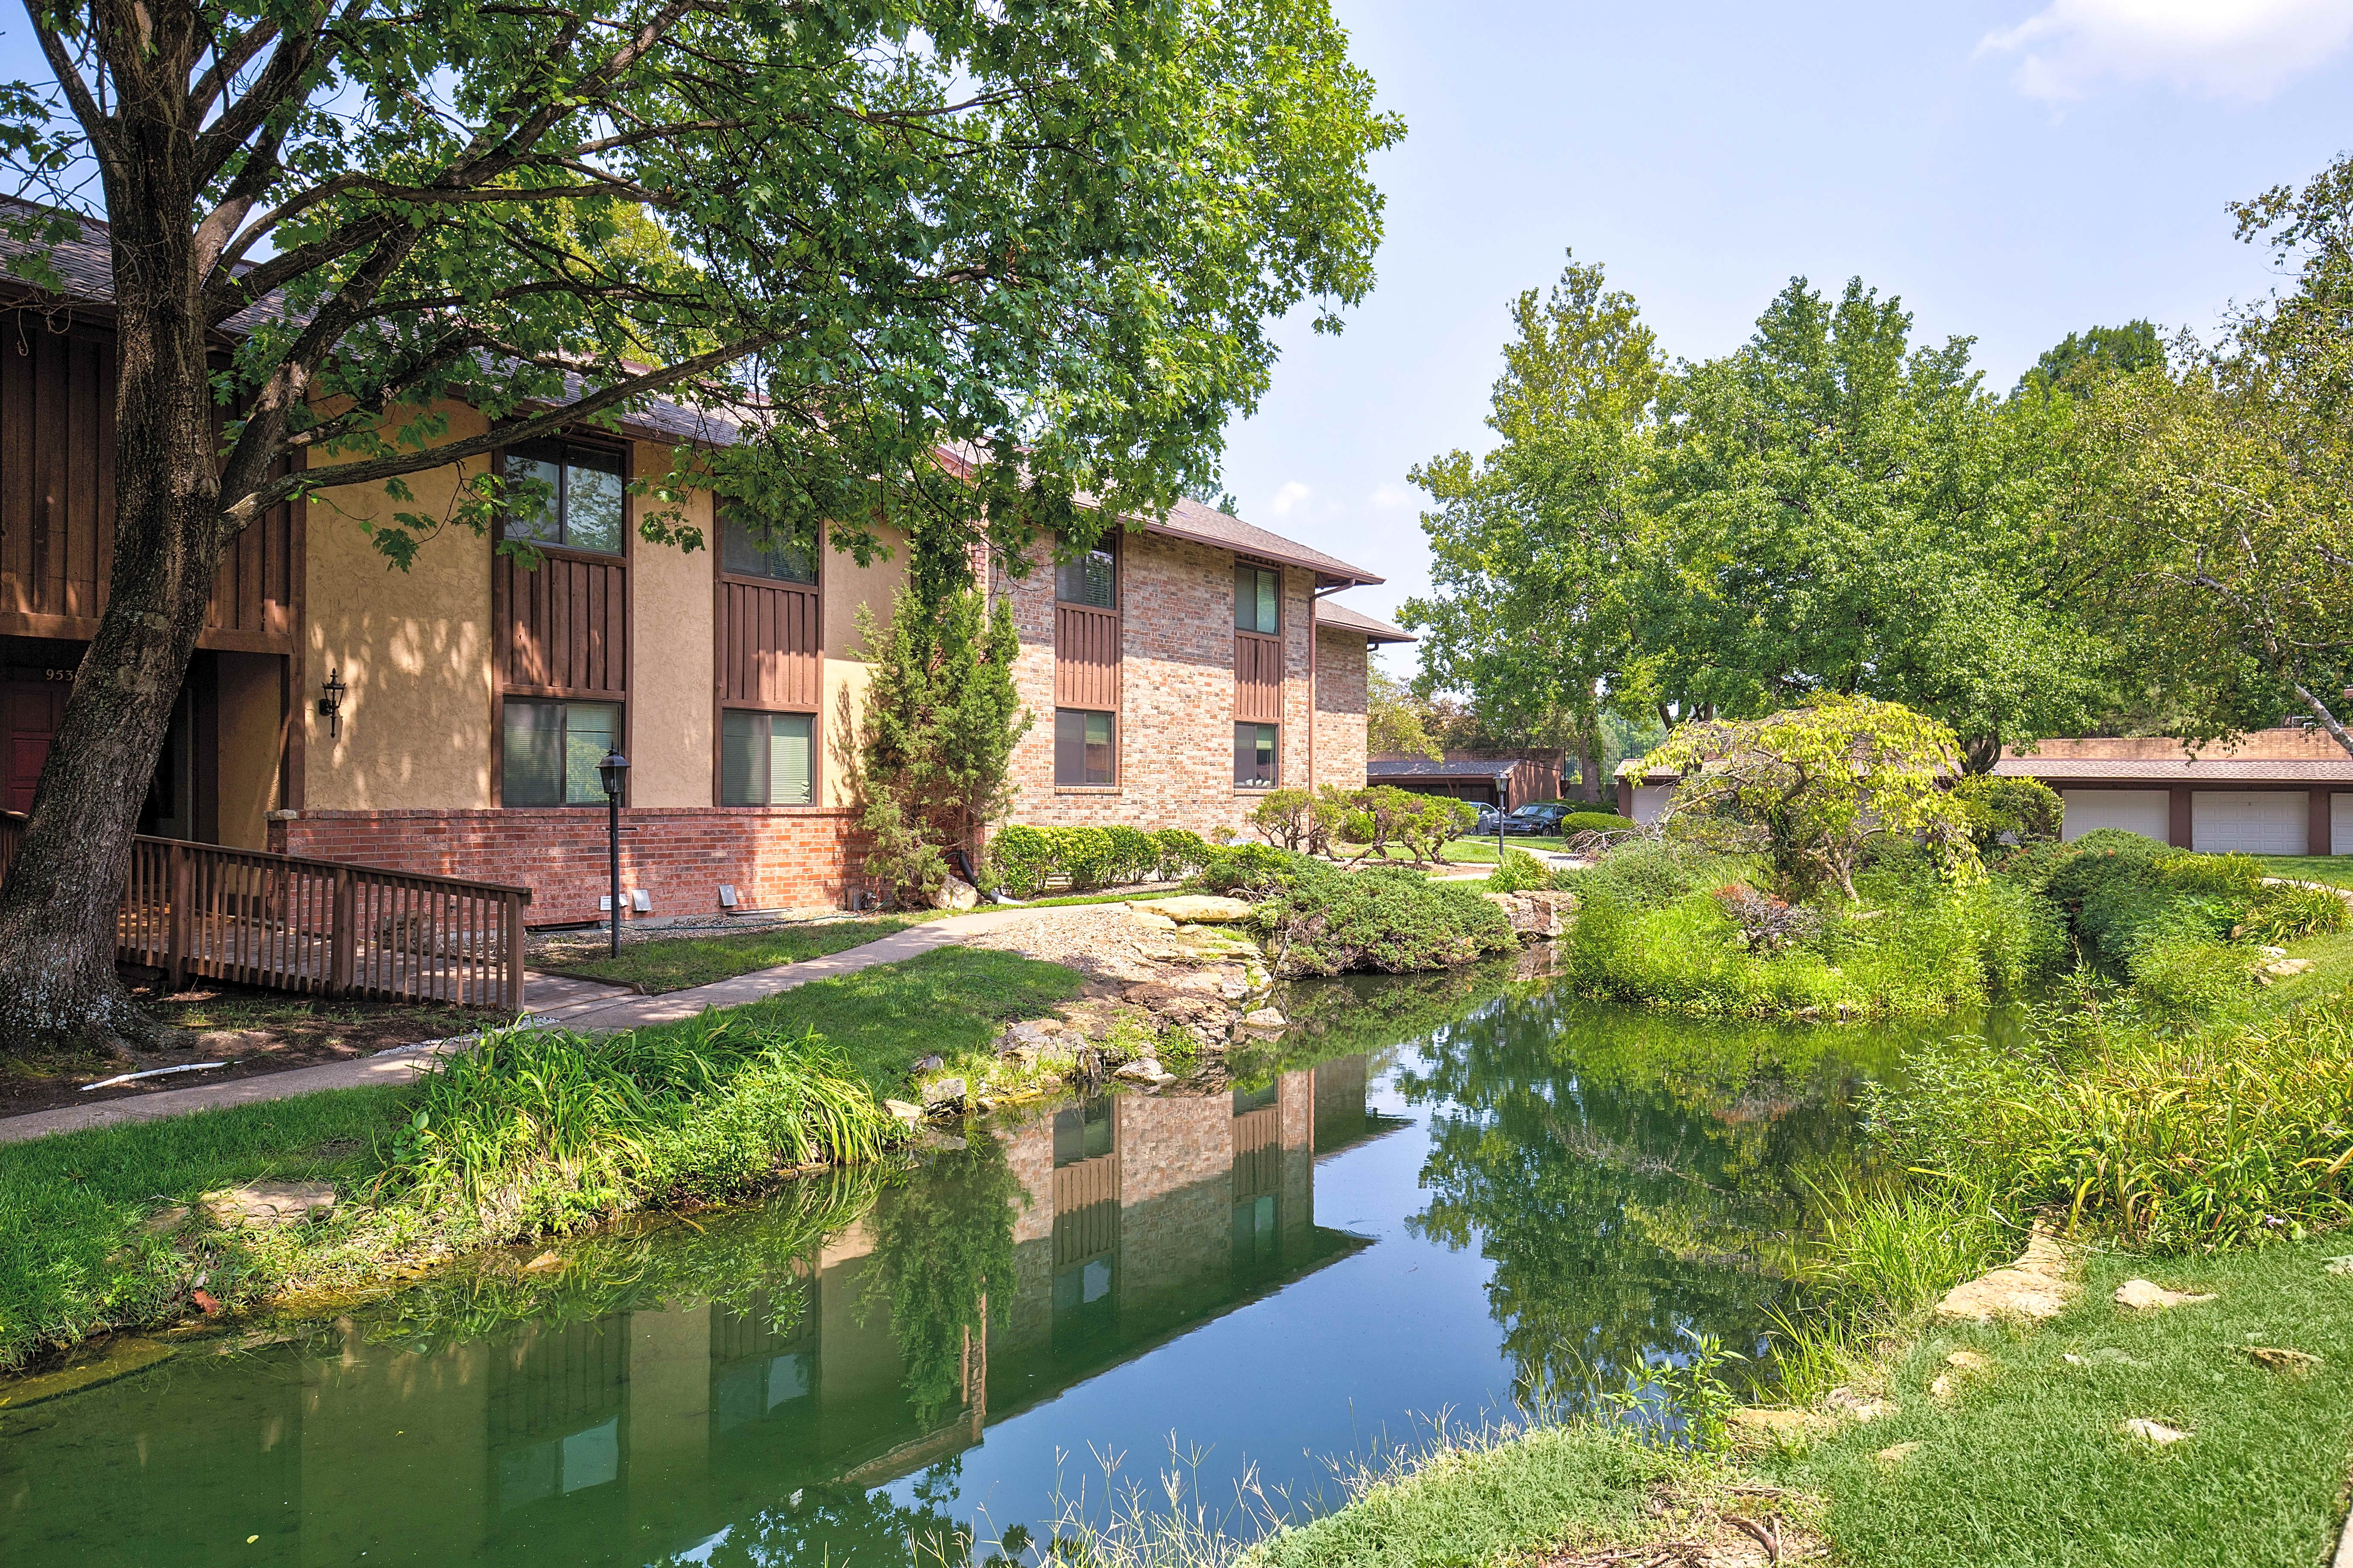 Apartments Near ITT Technical Institute-Kansas City Villa Medici for ITT Technical Institute-Kansas City Students in Kansas City, MO